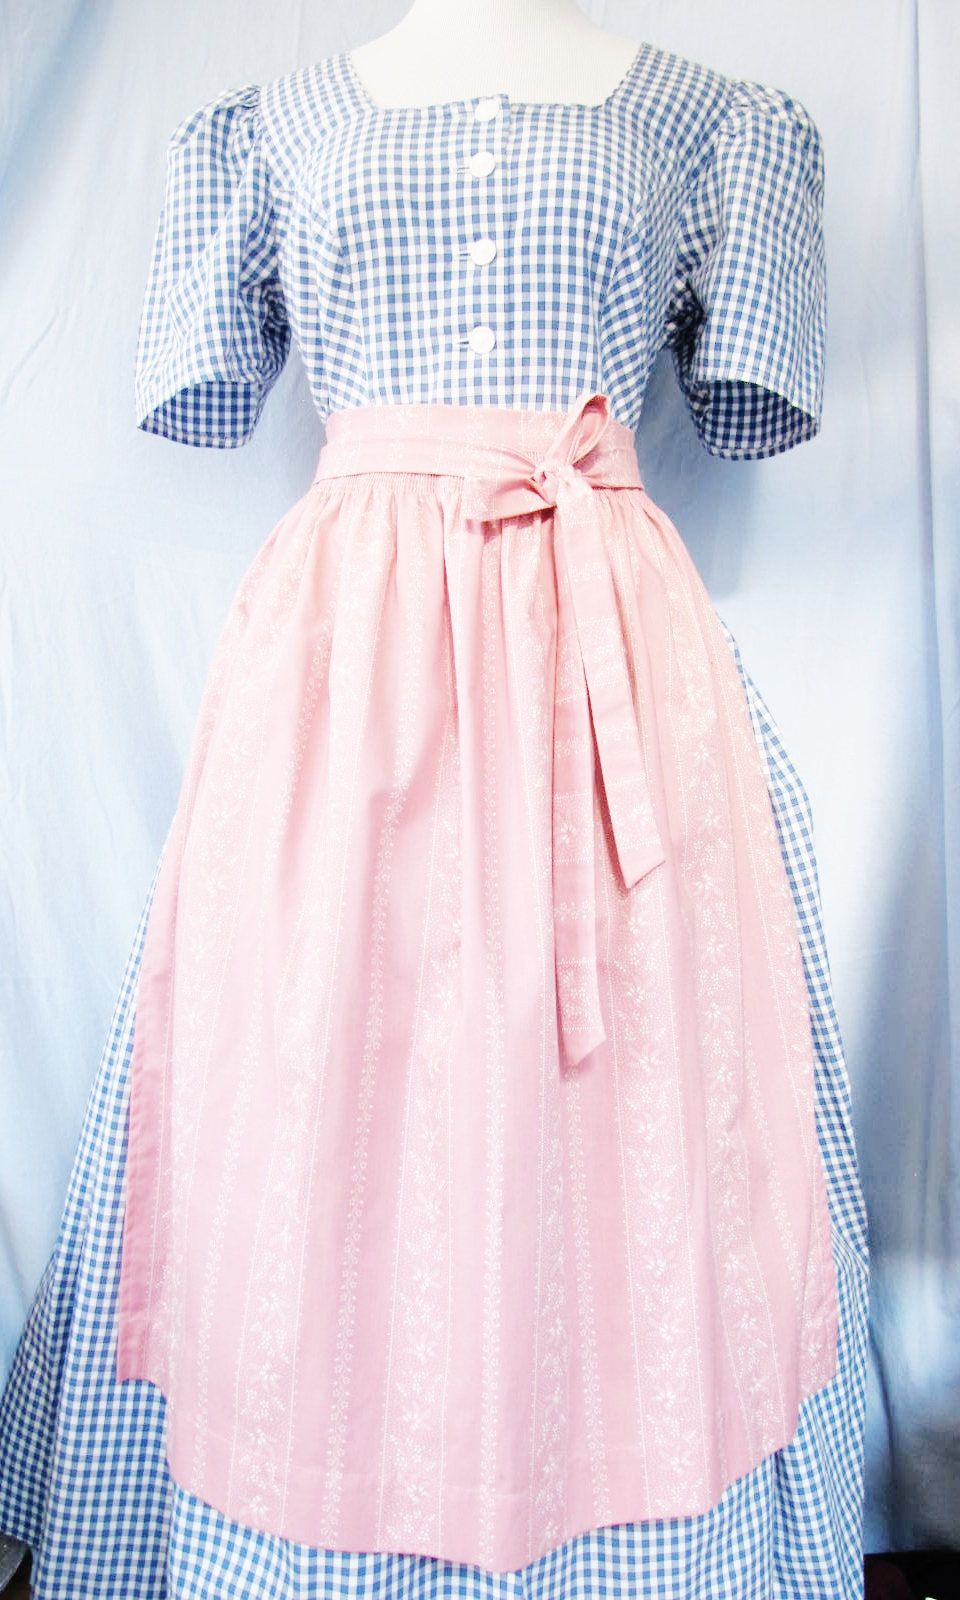 TRACHTEN DIRNDL Dress, Blue Gingham, Dusty Pink Apron, Cotton, Soft Stitched Buttons, Dirndl Sleeves, Bavarian, Alpine Austrian by AlpineCountryLooks on Etsy